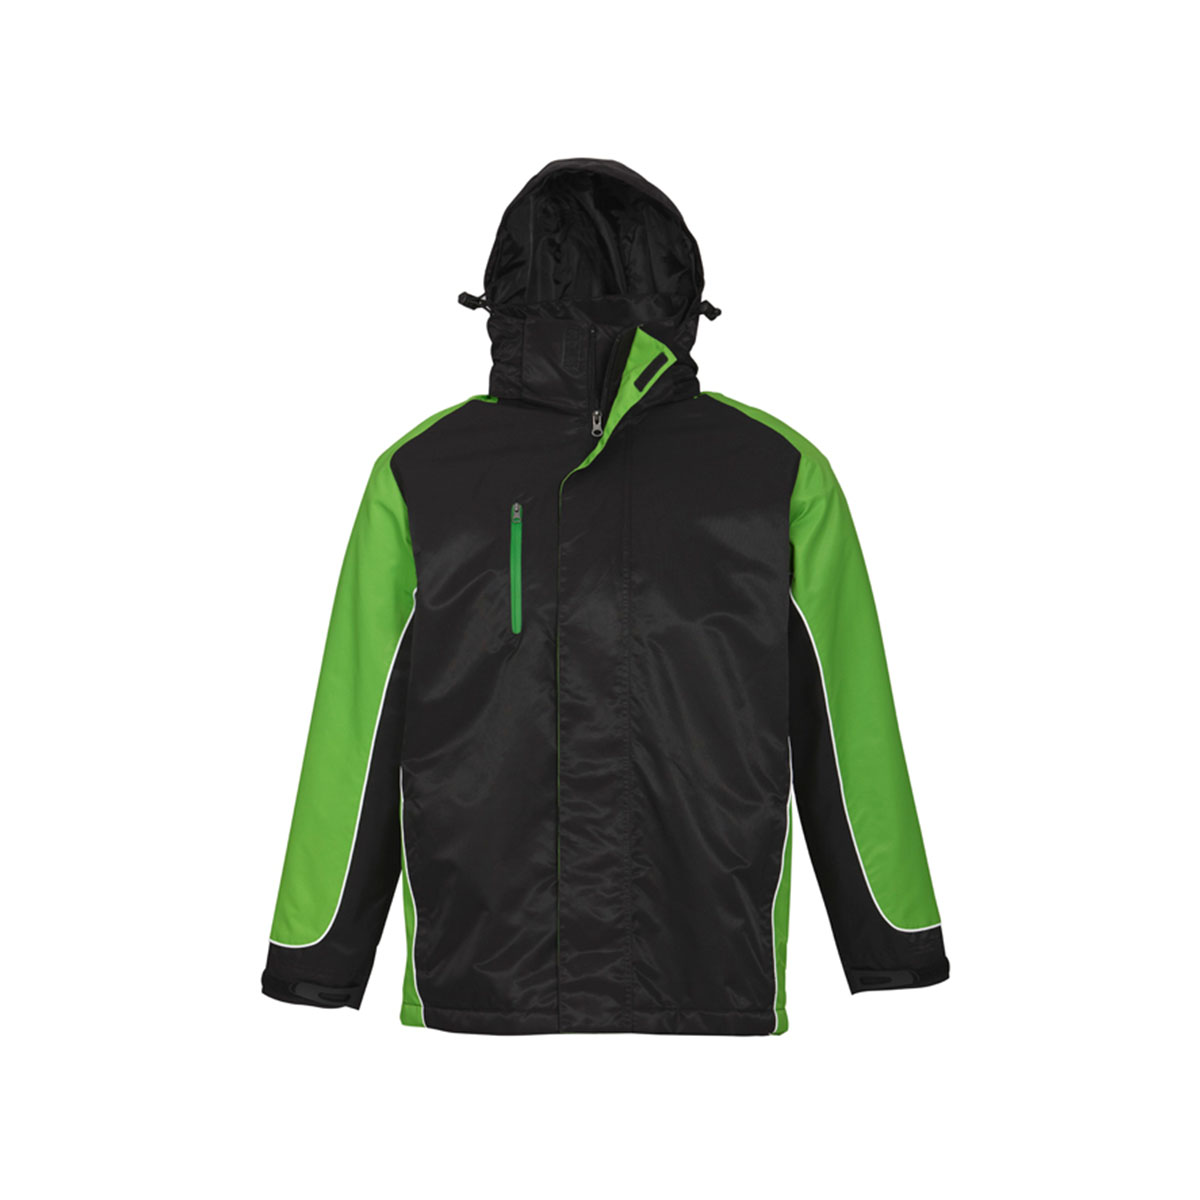 Unisex Nitro Jacket-Black / Green / White